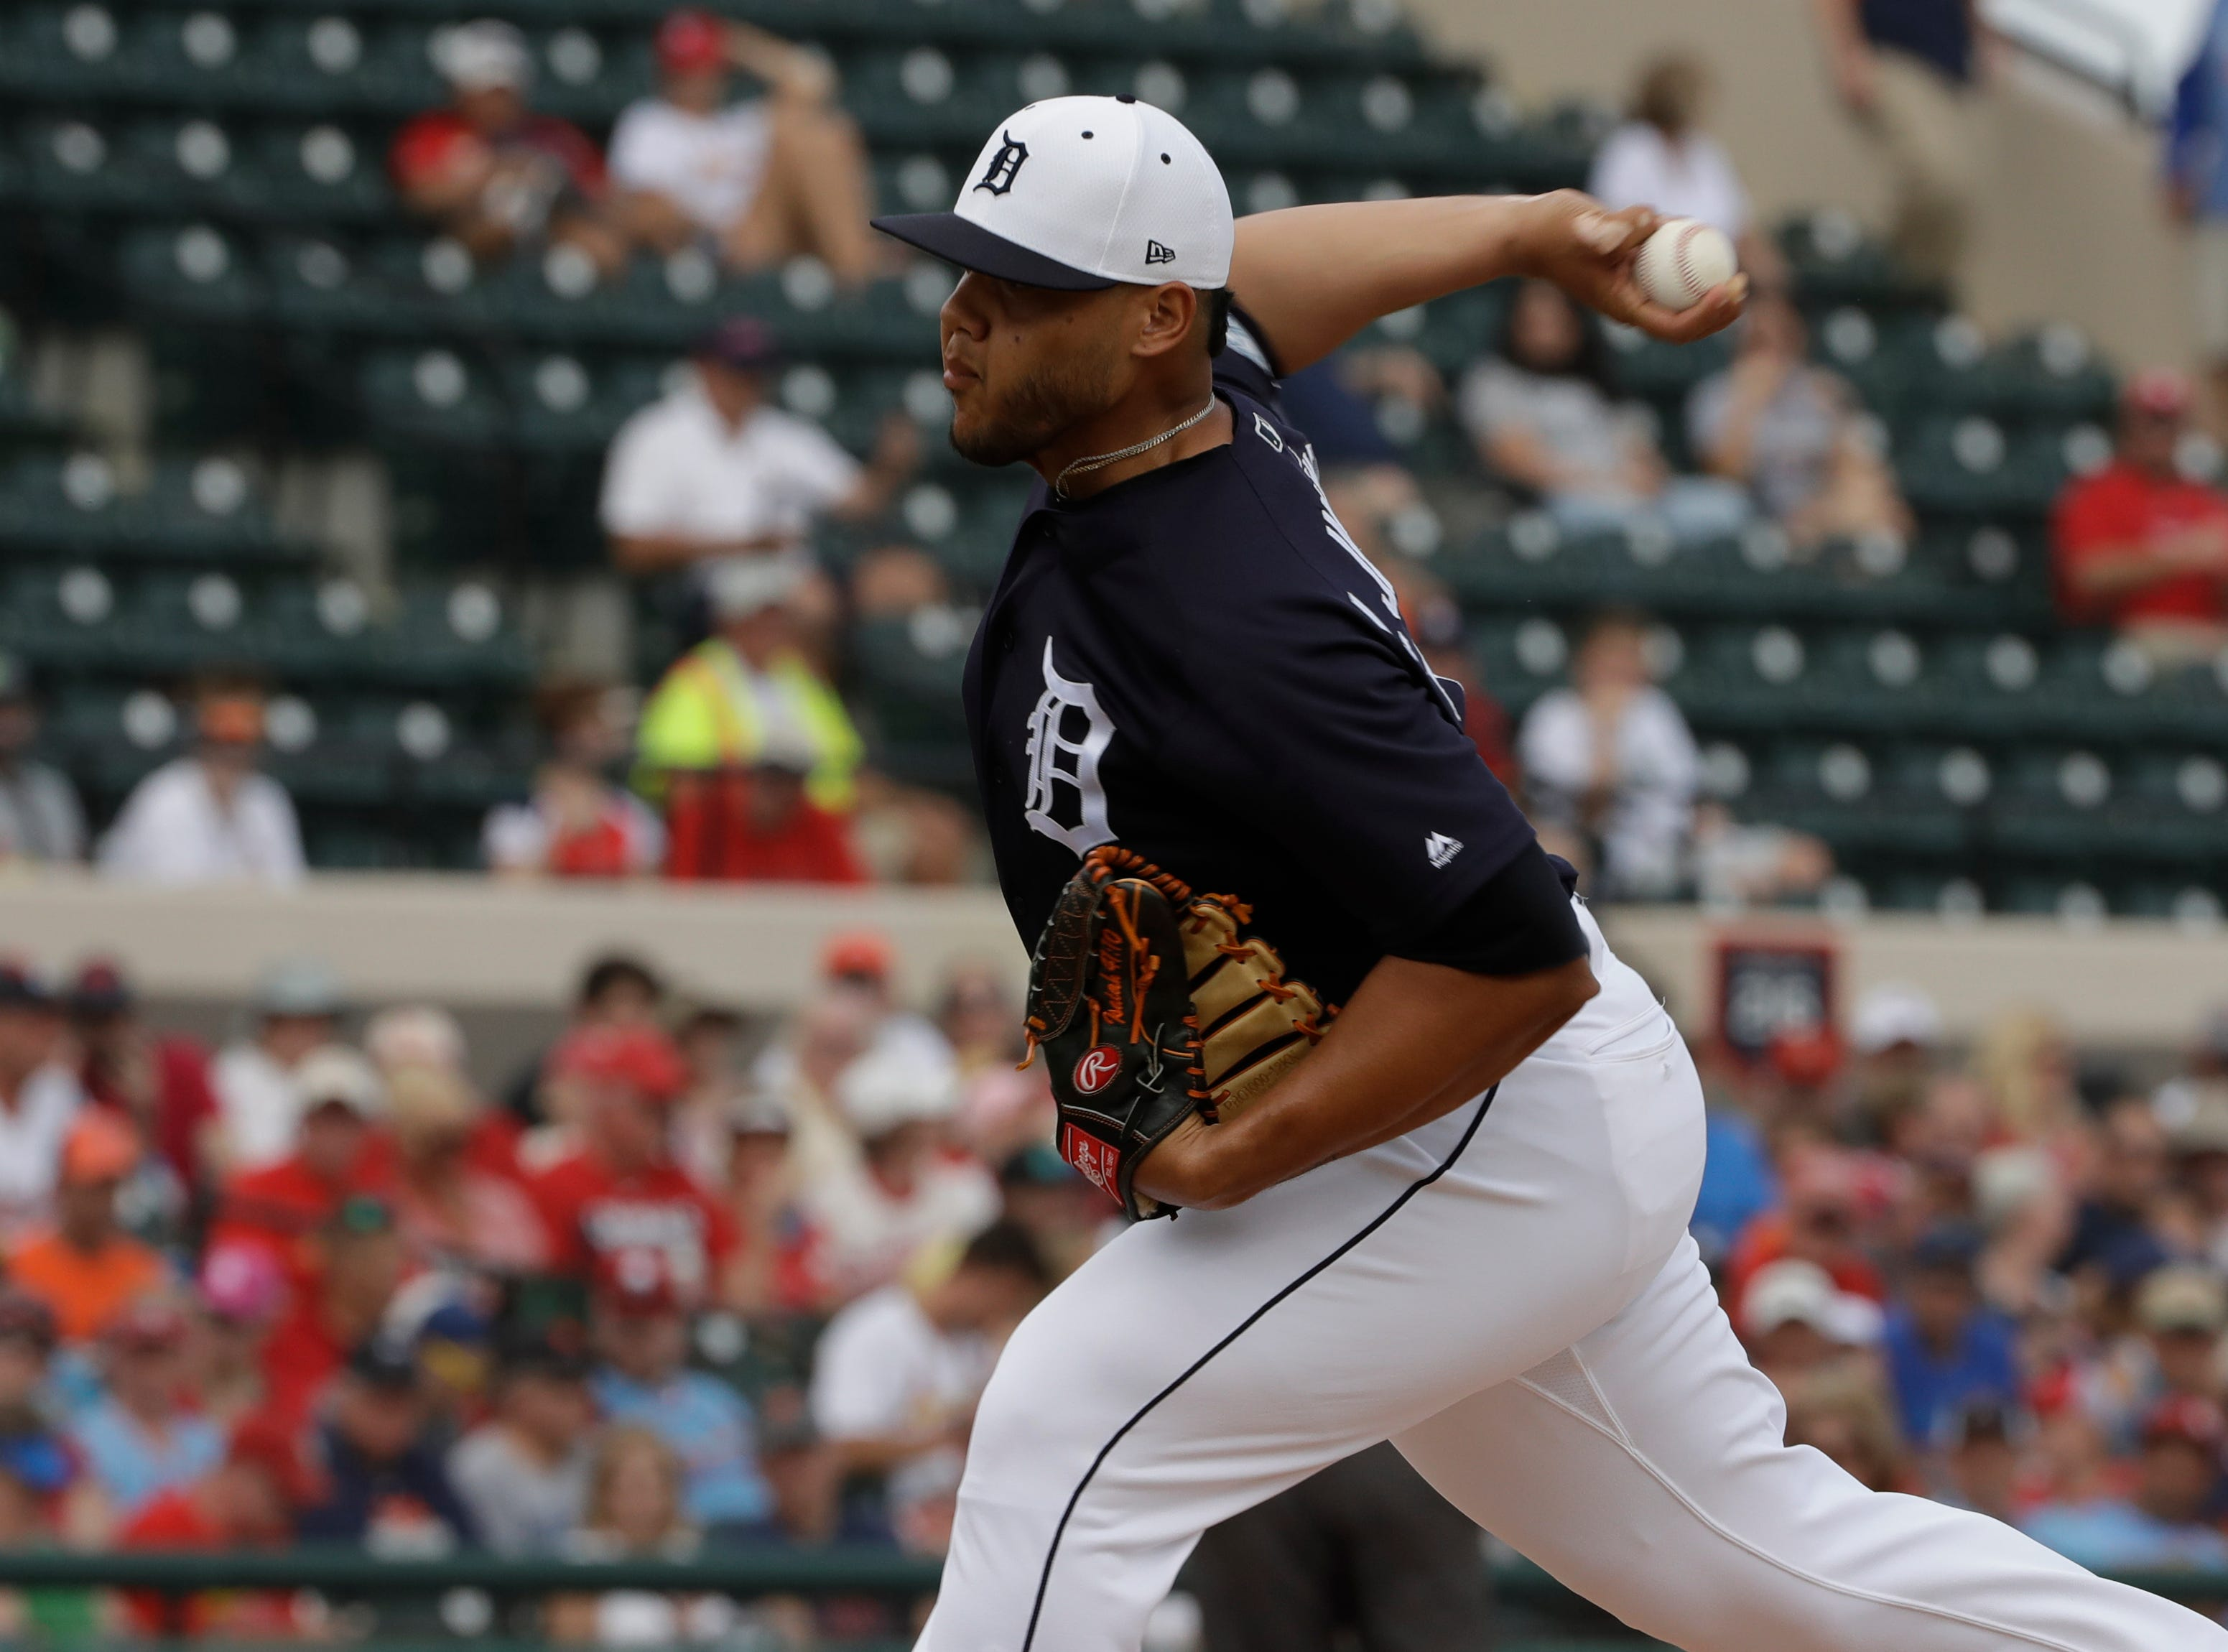 Detroit Tigers relief pitcher Joe Jimenez pitches during the fourth inning.